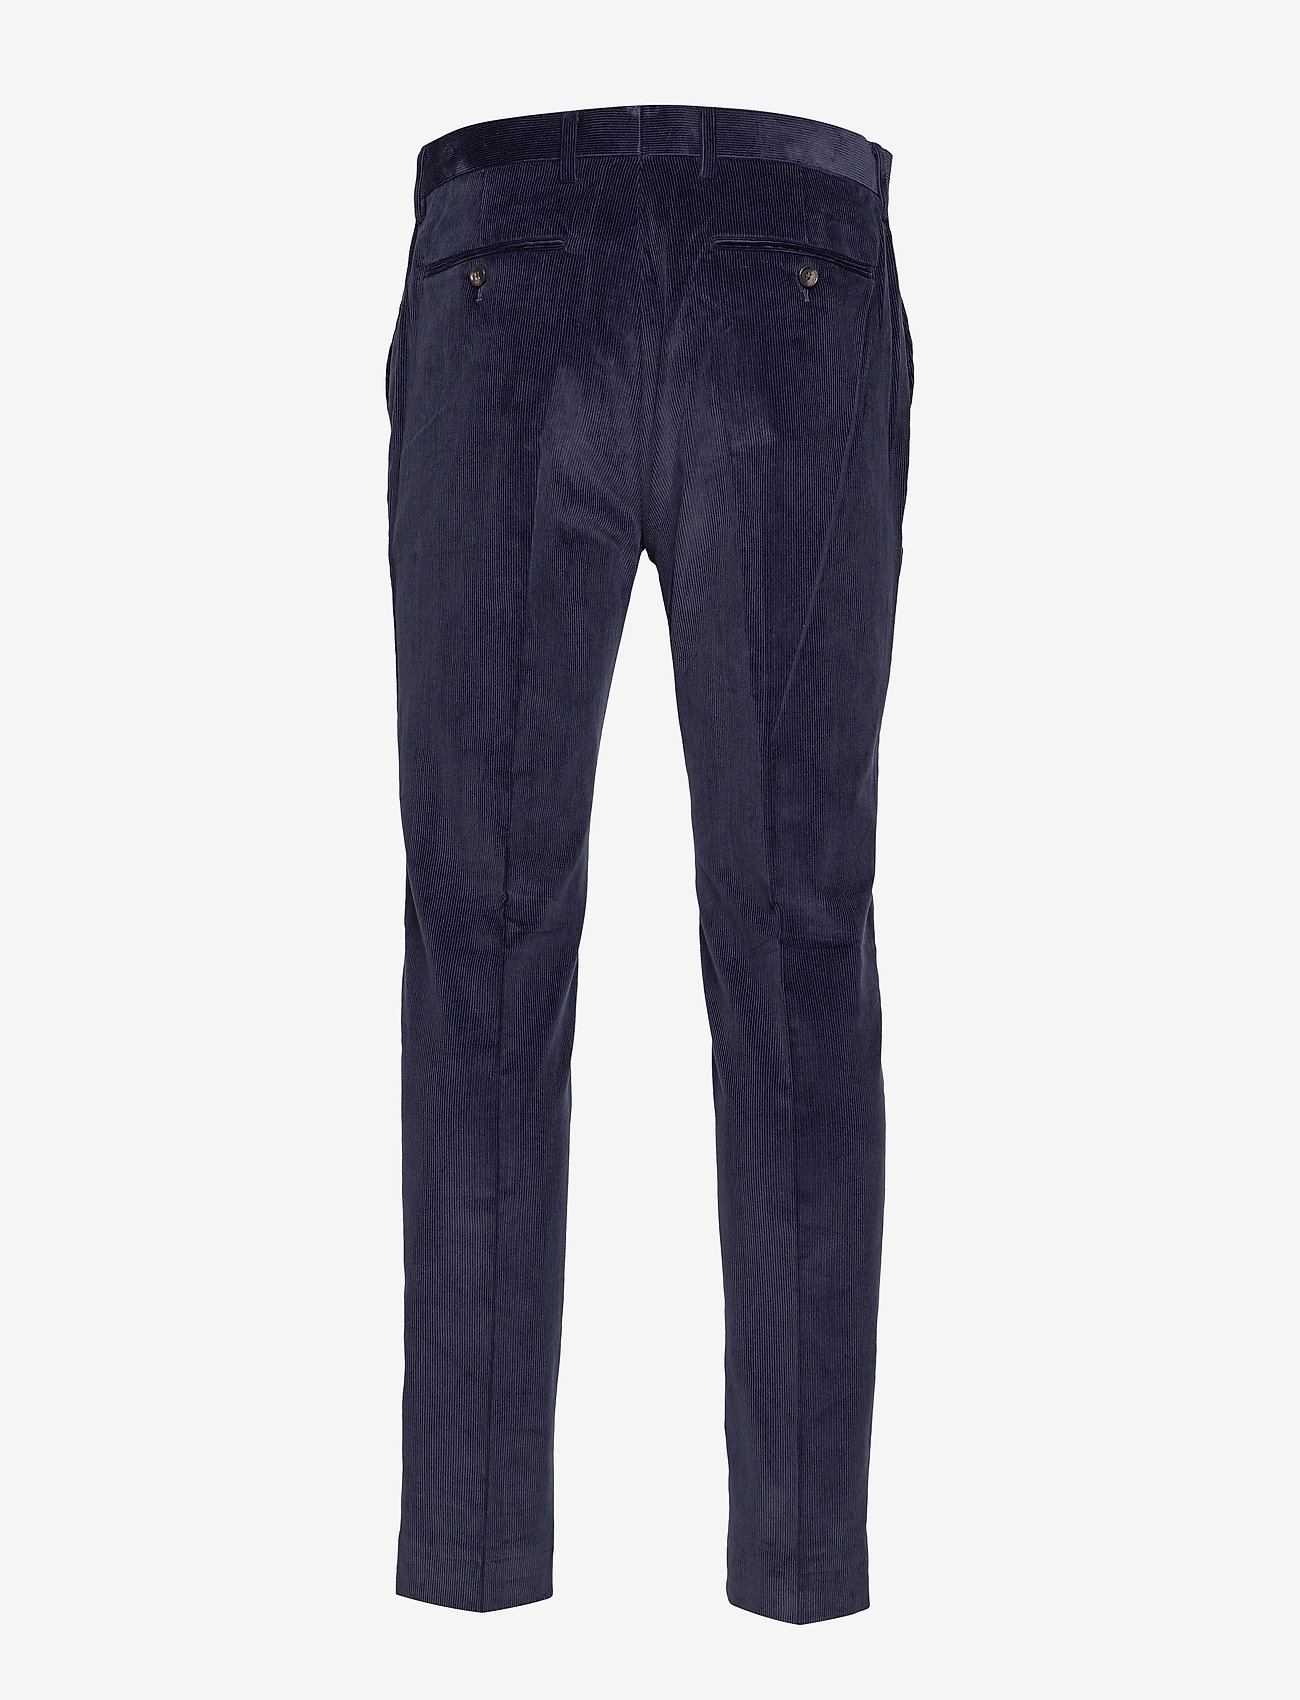 Slim Tapered Italian Corduroy Suit Pant (Navy) - Banana Republic SVVGFN